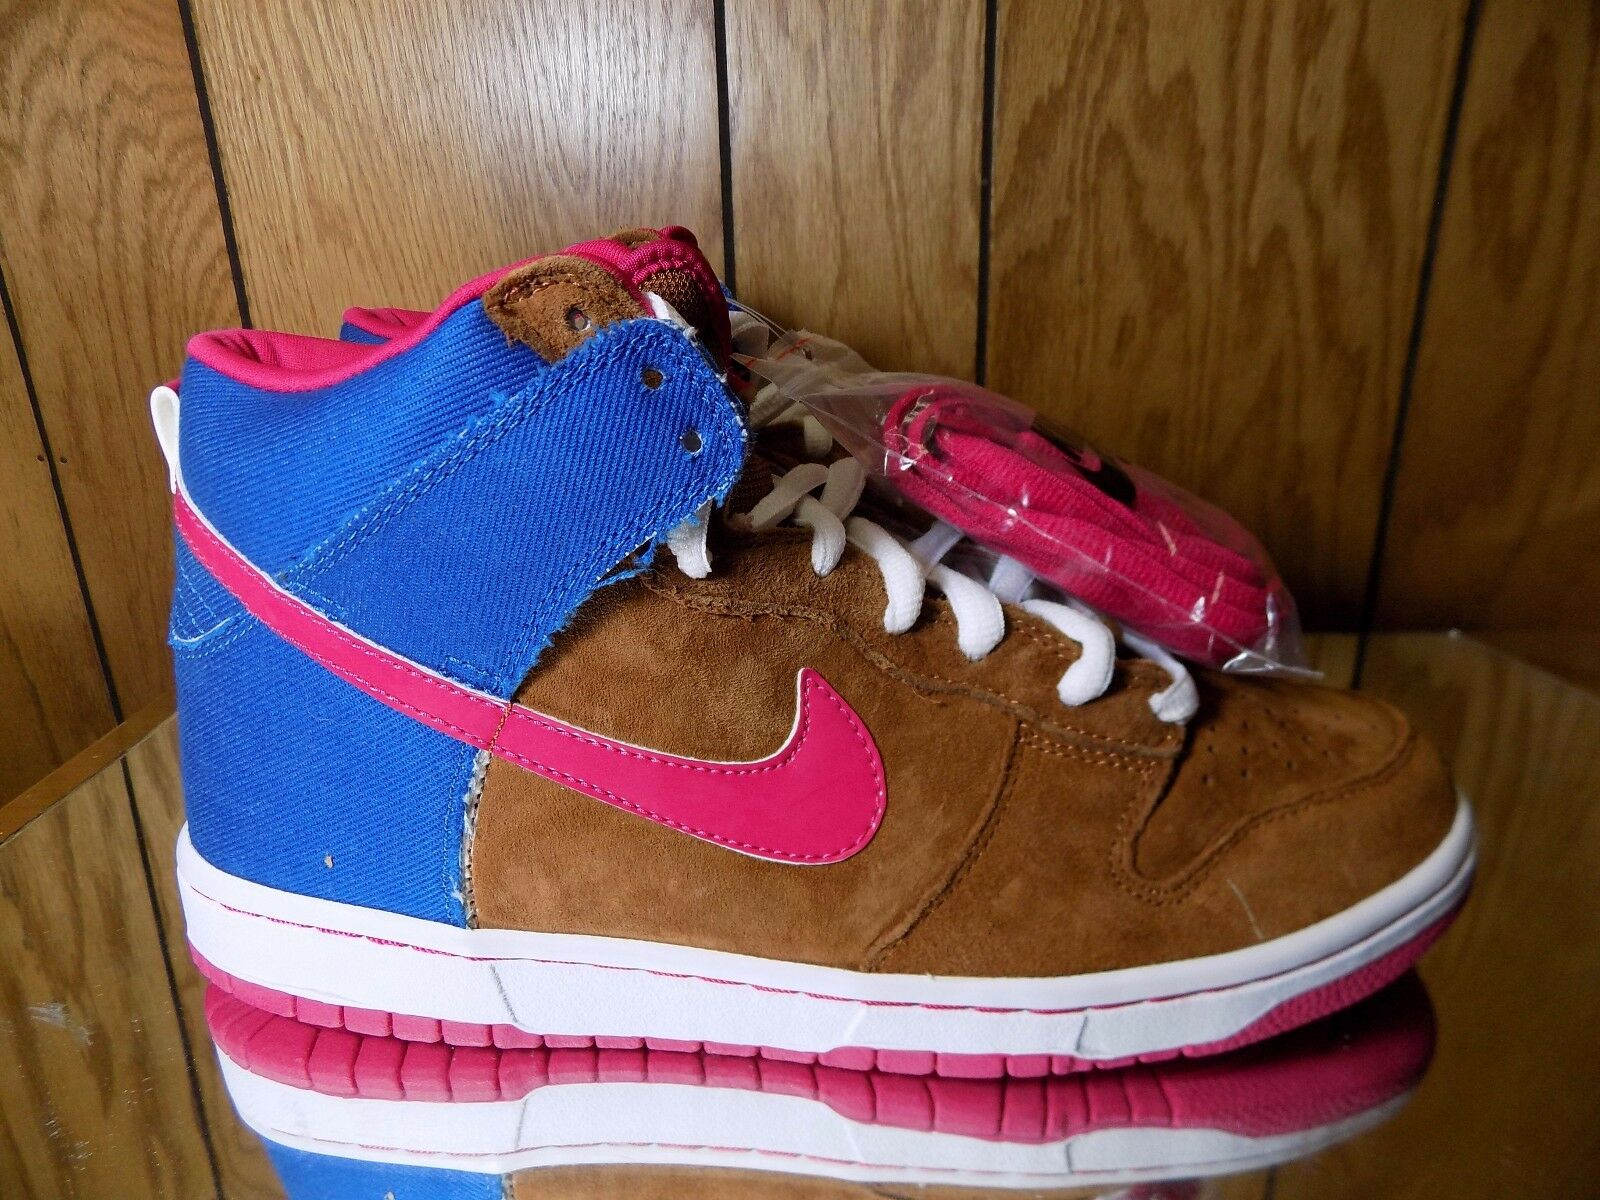 DS 2008 NIKE DUNK HIGH PRO SB Mr. Todd Bratrud hazelnut/cerise 305050-261 sz 10